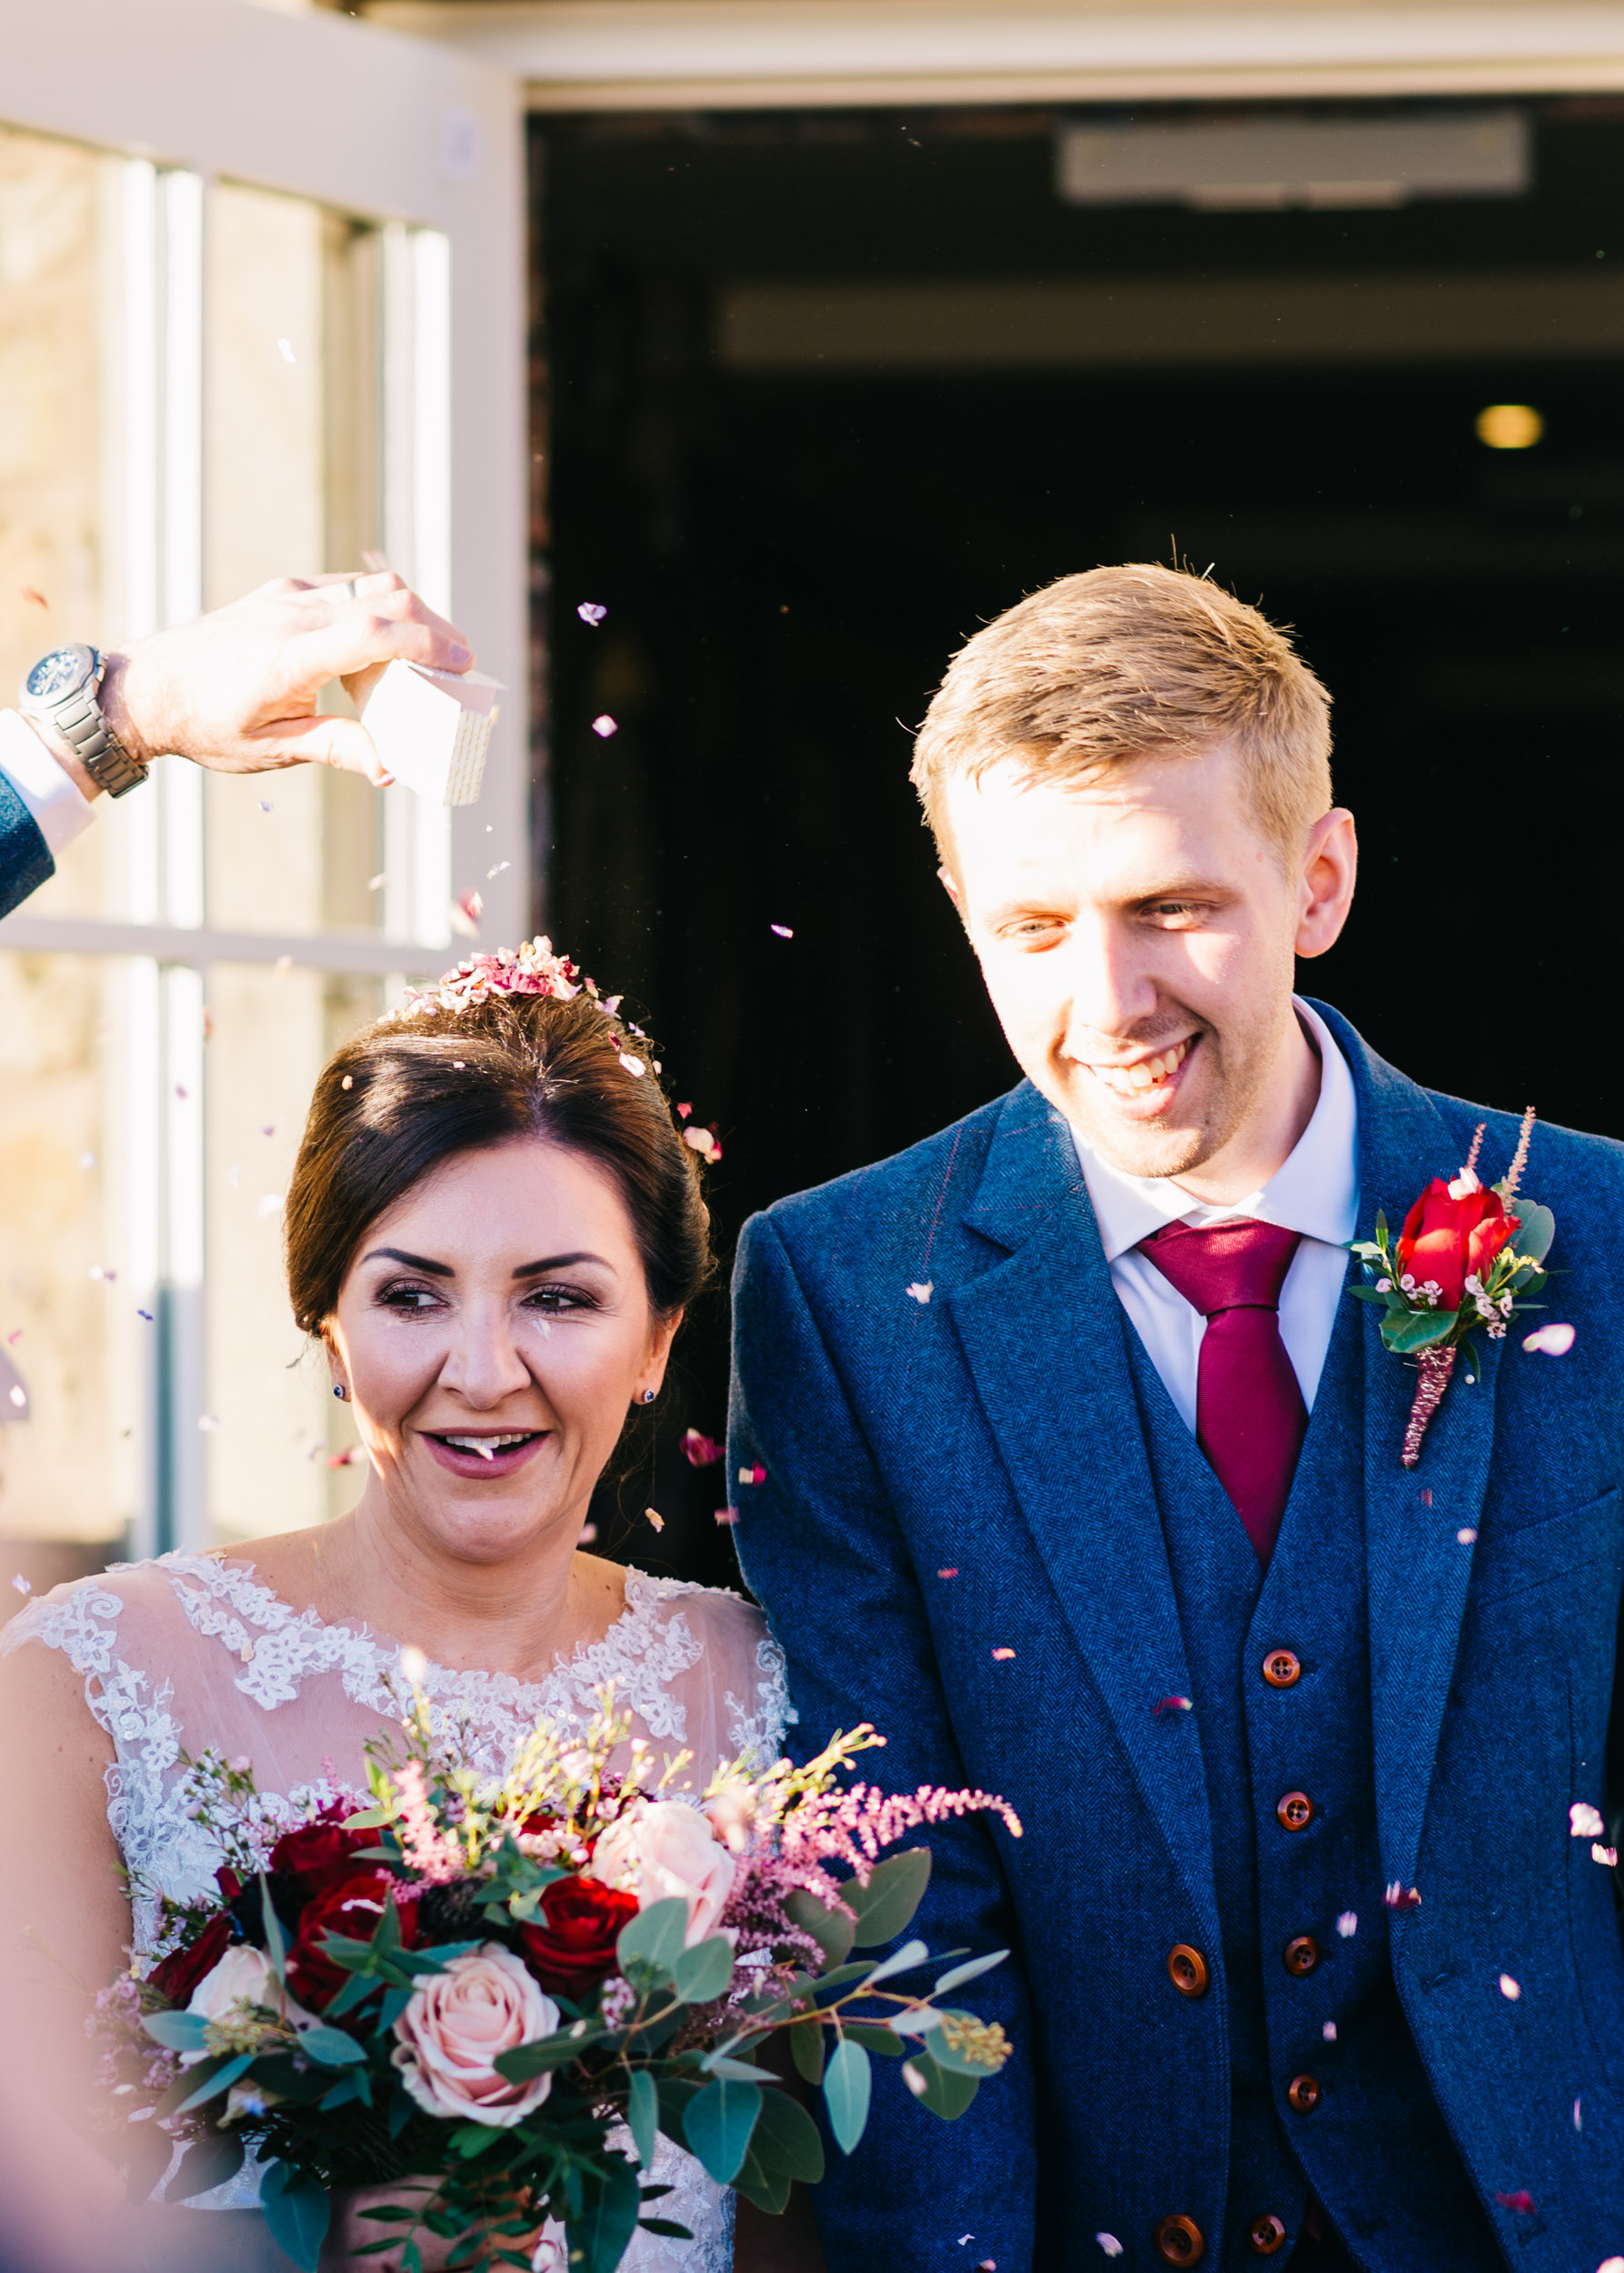 Shireburn Arms Wedding Hurst Green, Ribble Valley, Lancashire19